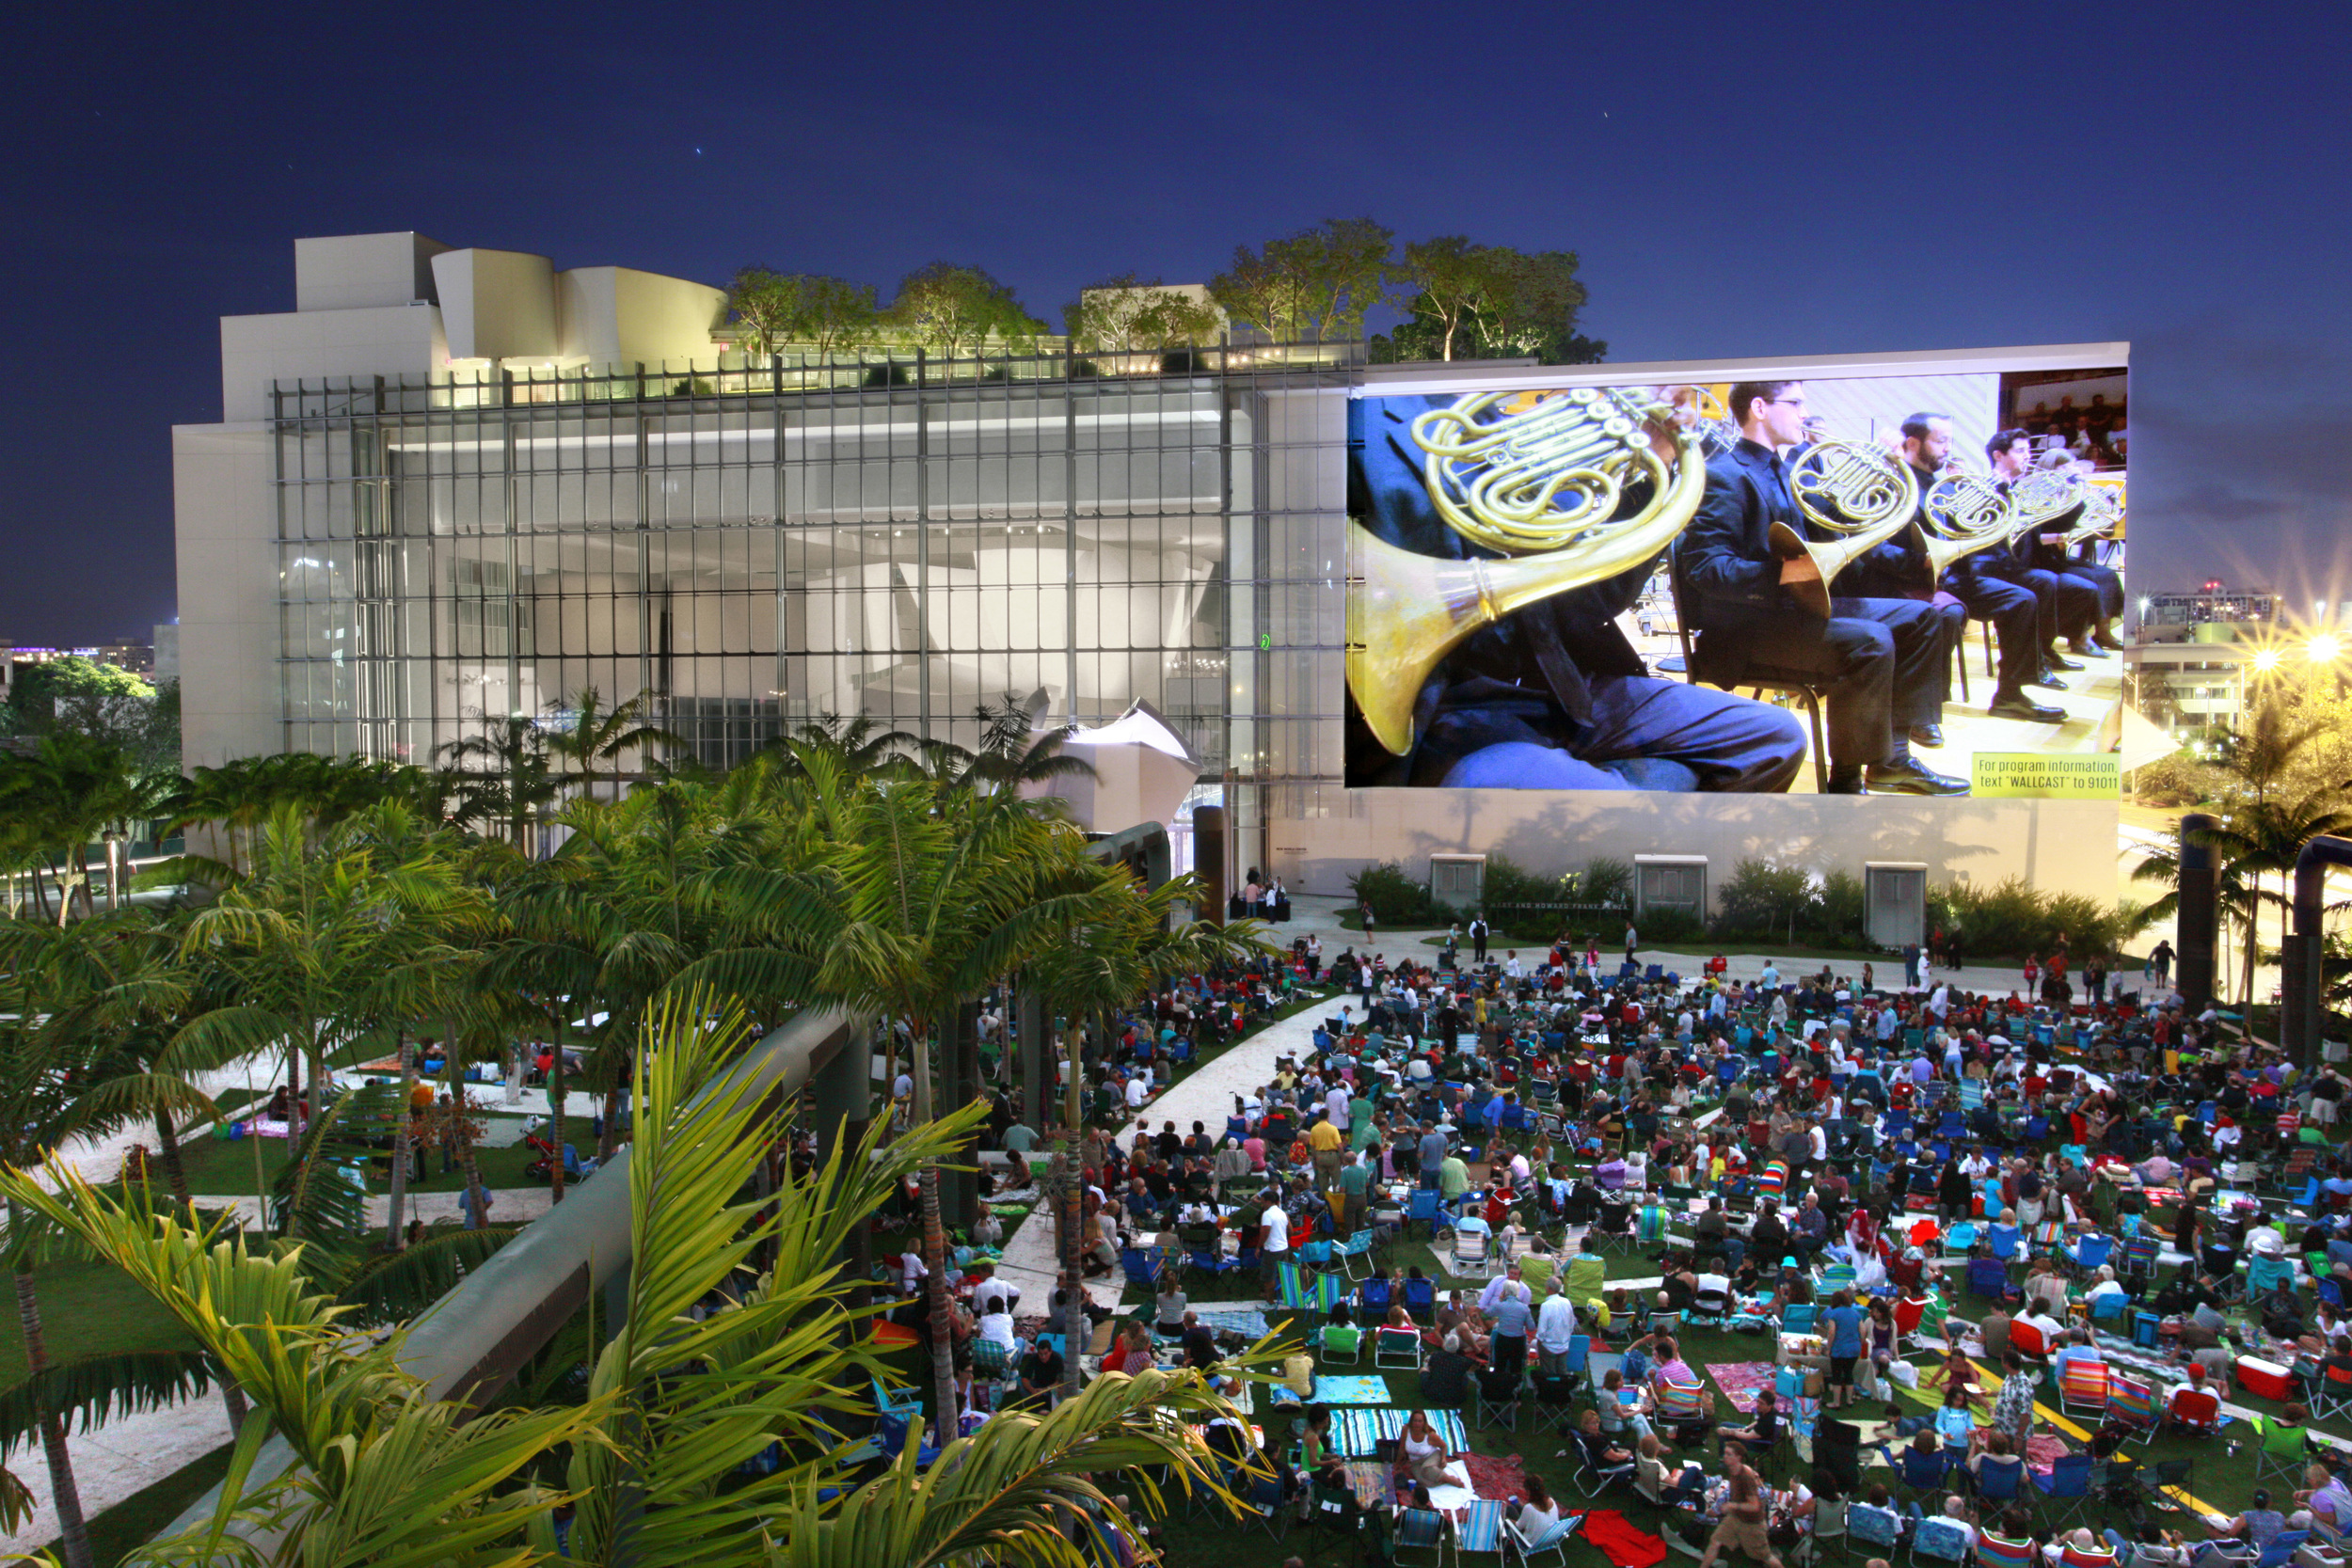 The New World Symphony WALLCAST events are free to the public and allow the community to enjoy select events from the lawns of SoundScape park, on the vast 7000 square foot projection wall, all thanks to a stunning use of high audio and visual technology. (Photo courtesy of New World Center.)